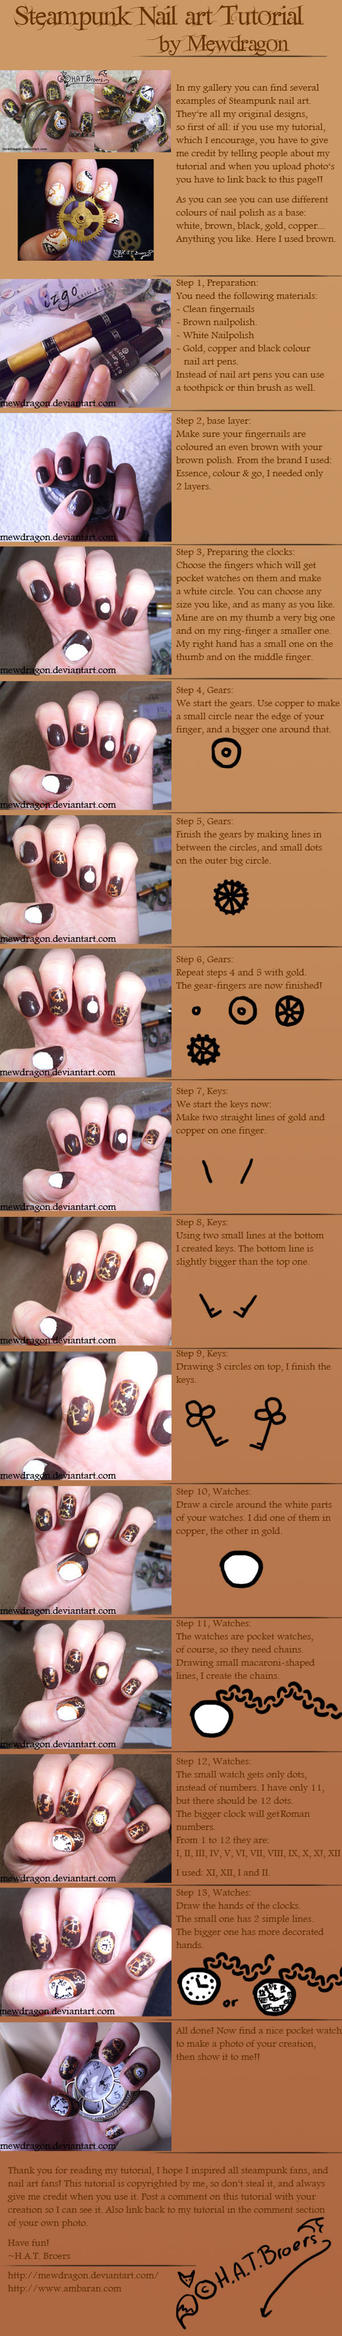 Steampunk Nailart Tutorial by Kythana